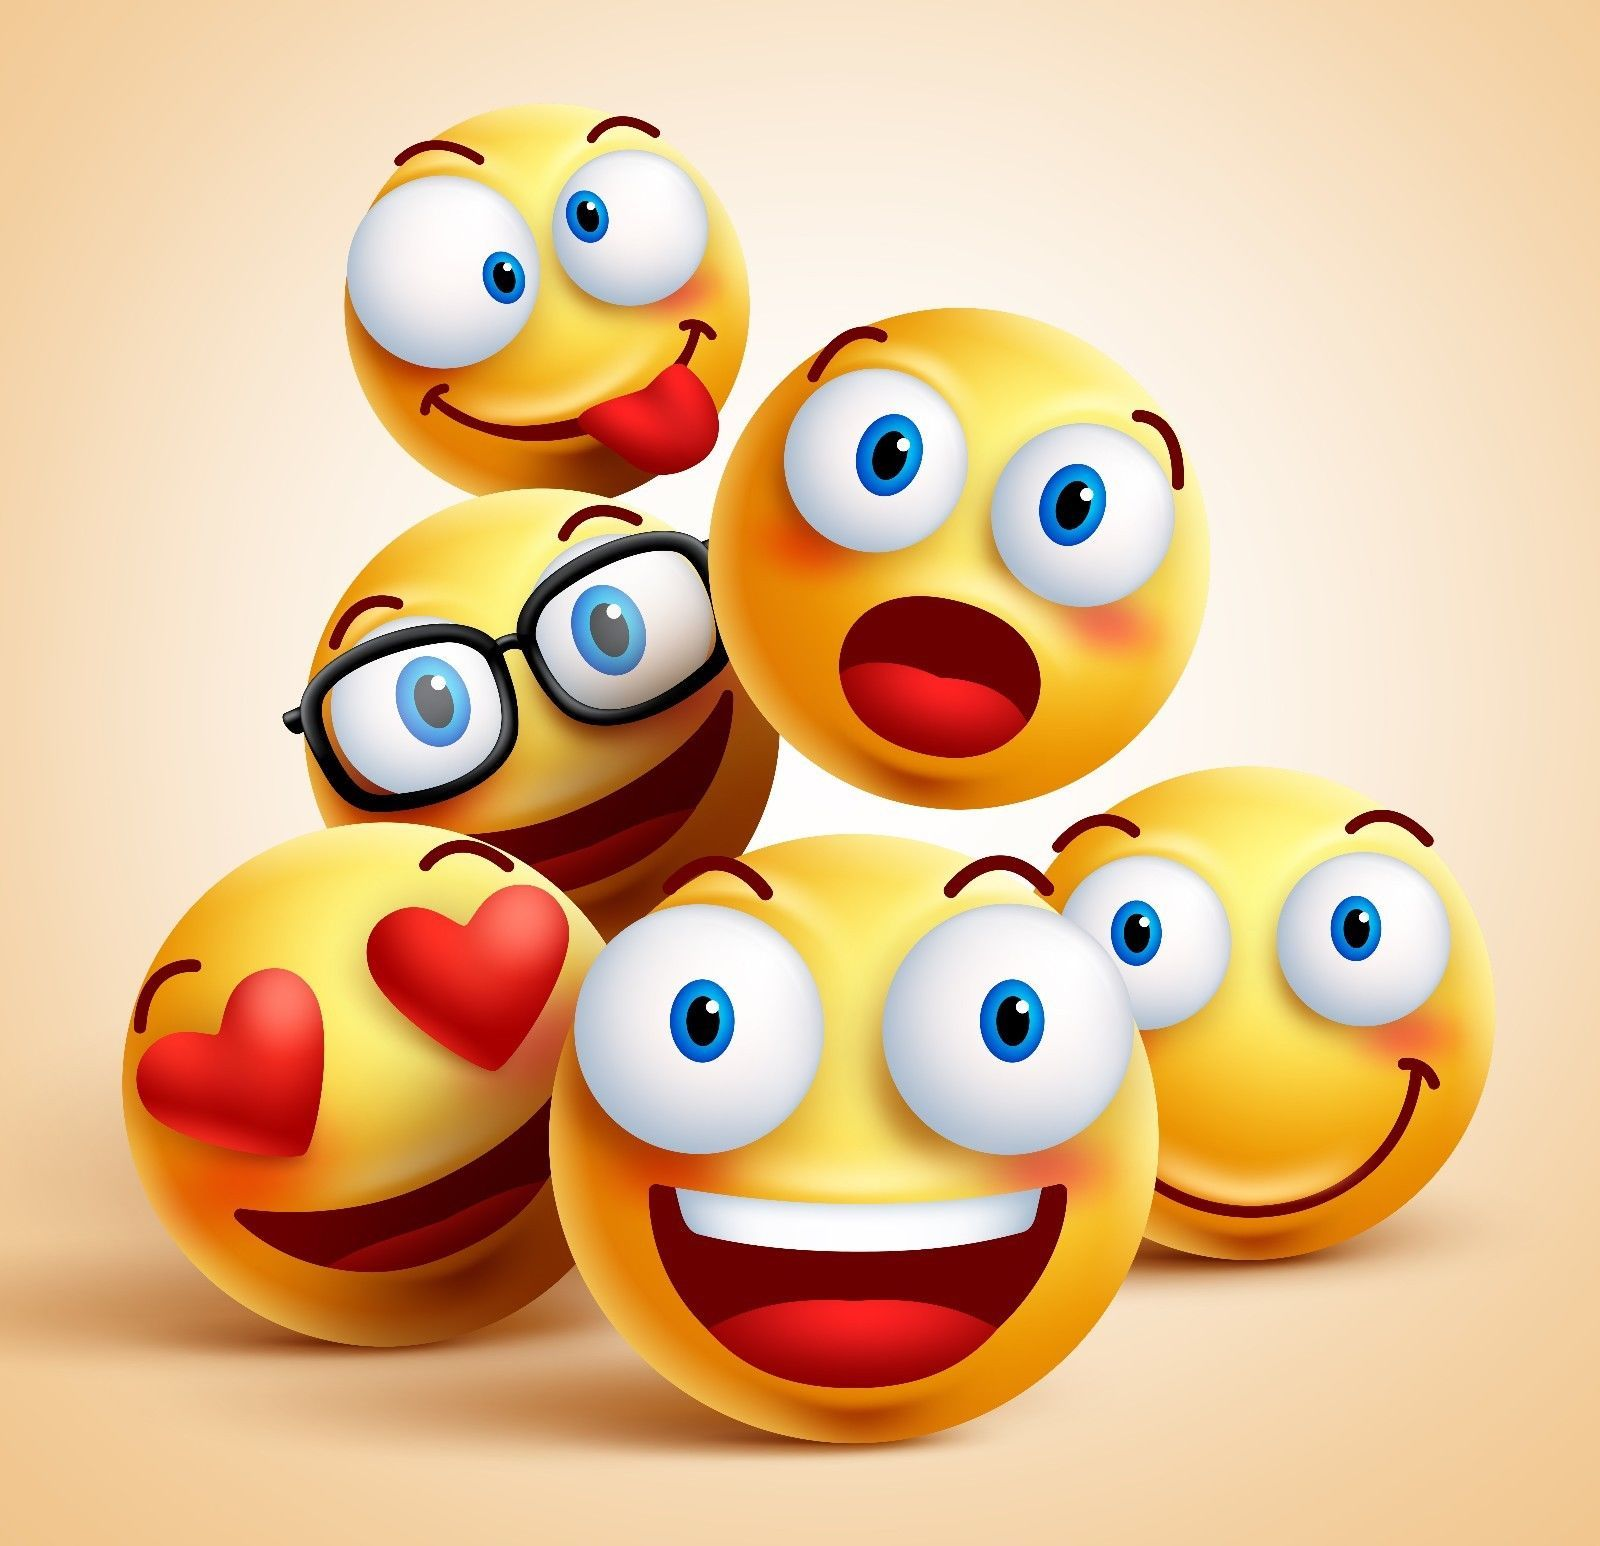 For Iphone 3 5 6 7 And 7 Plus Hard Case Smiley Unique Design Smiley Face Images Funny Facial Expressions Emoji Wallpaper